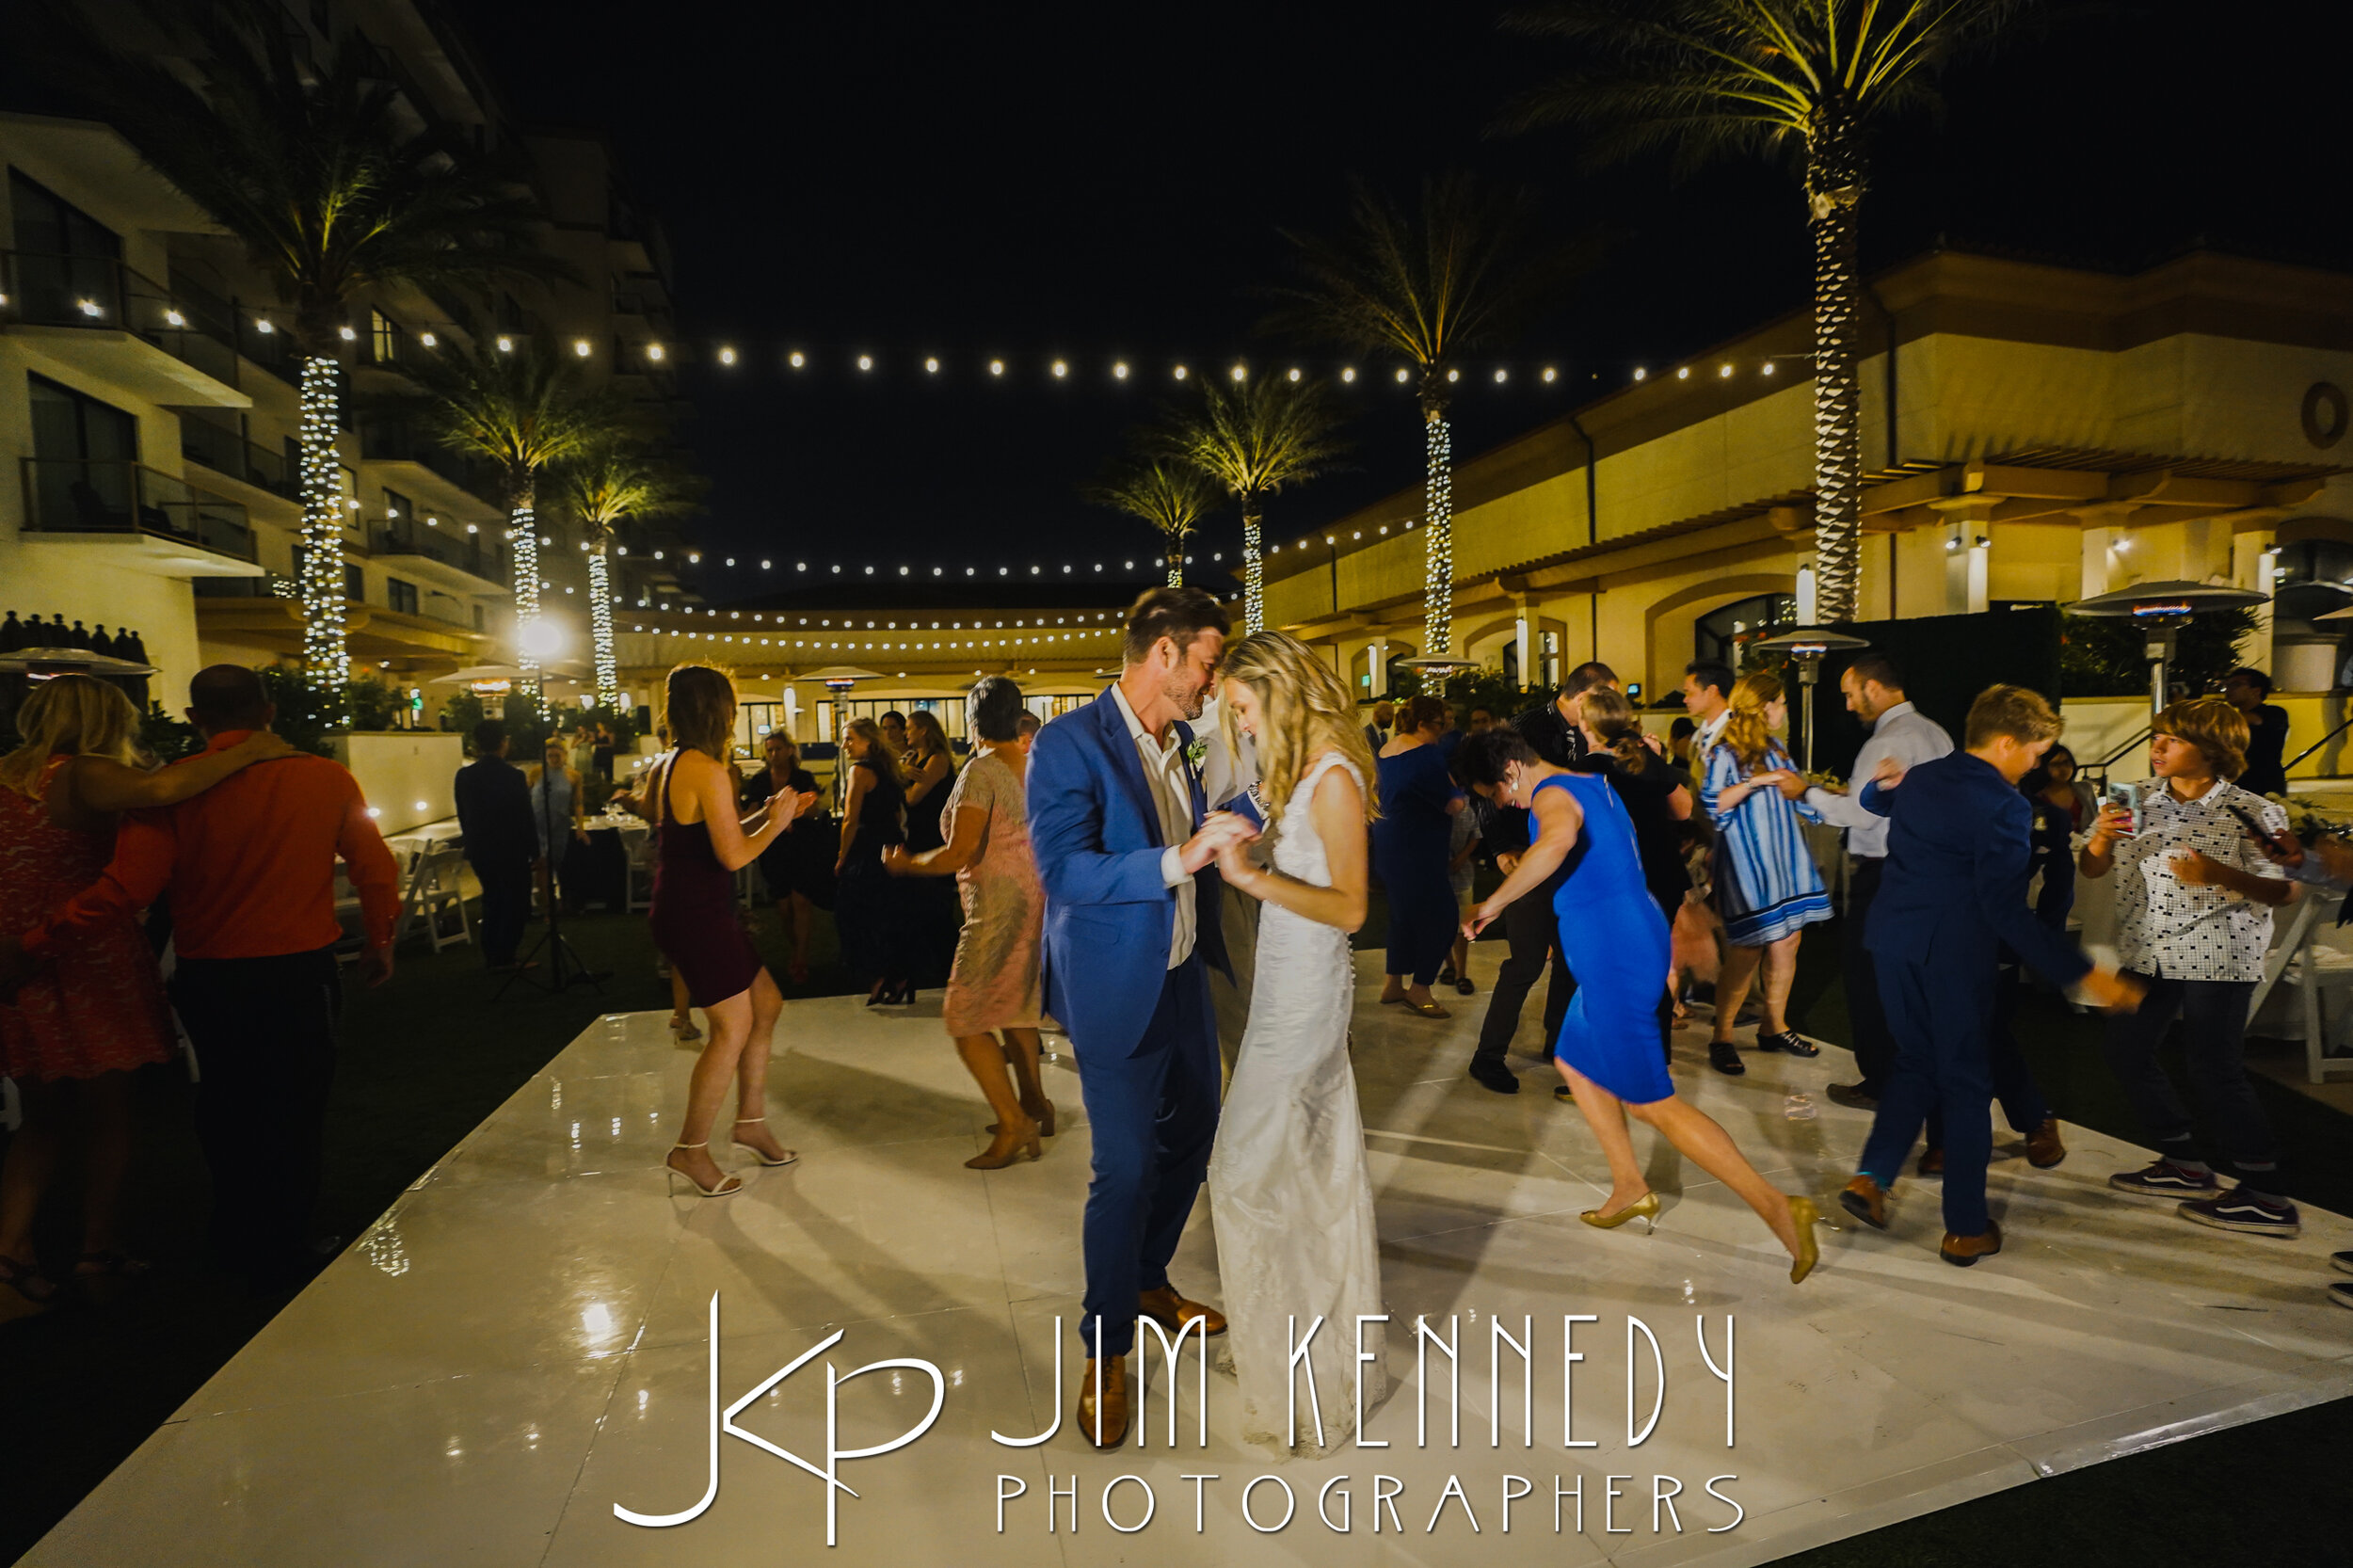 waterfront-hilton-wedding-jim-kennedy-photographers_0191.JPG